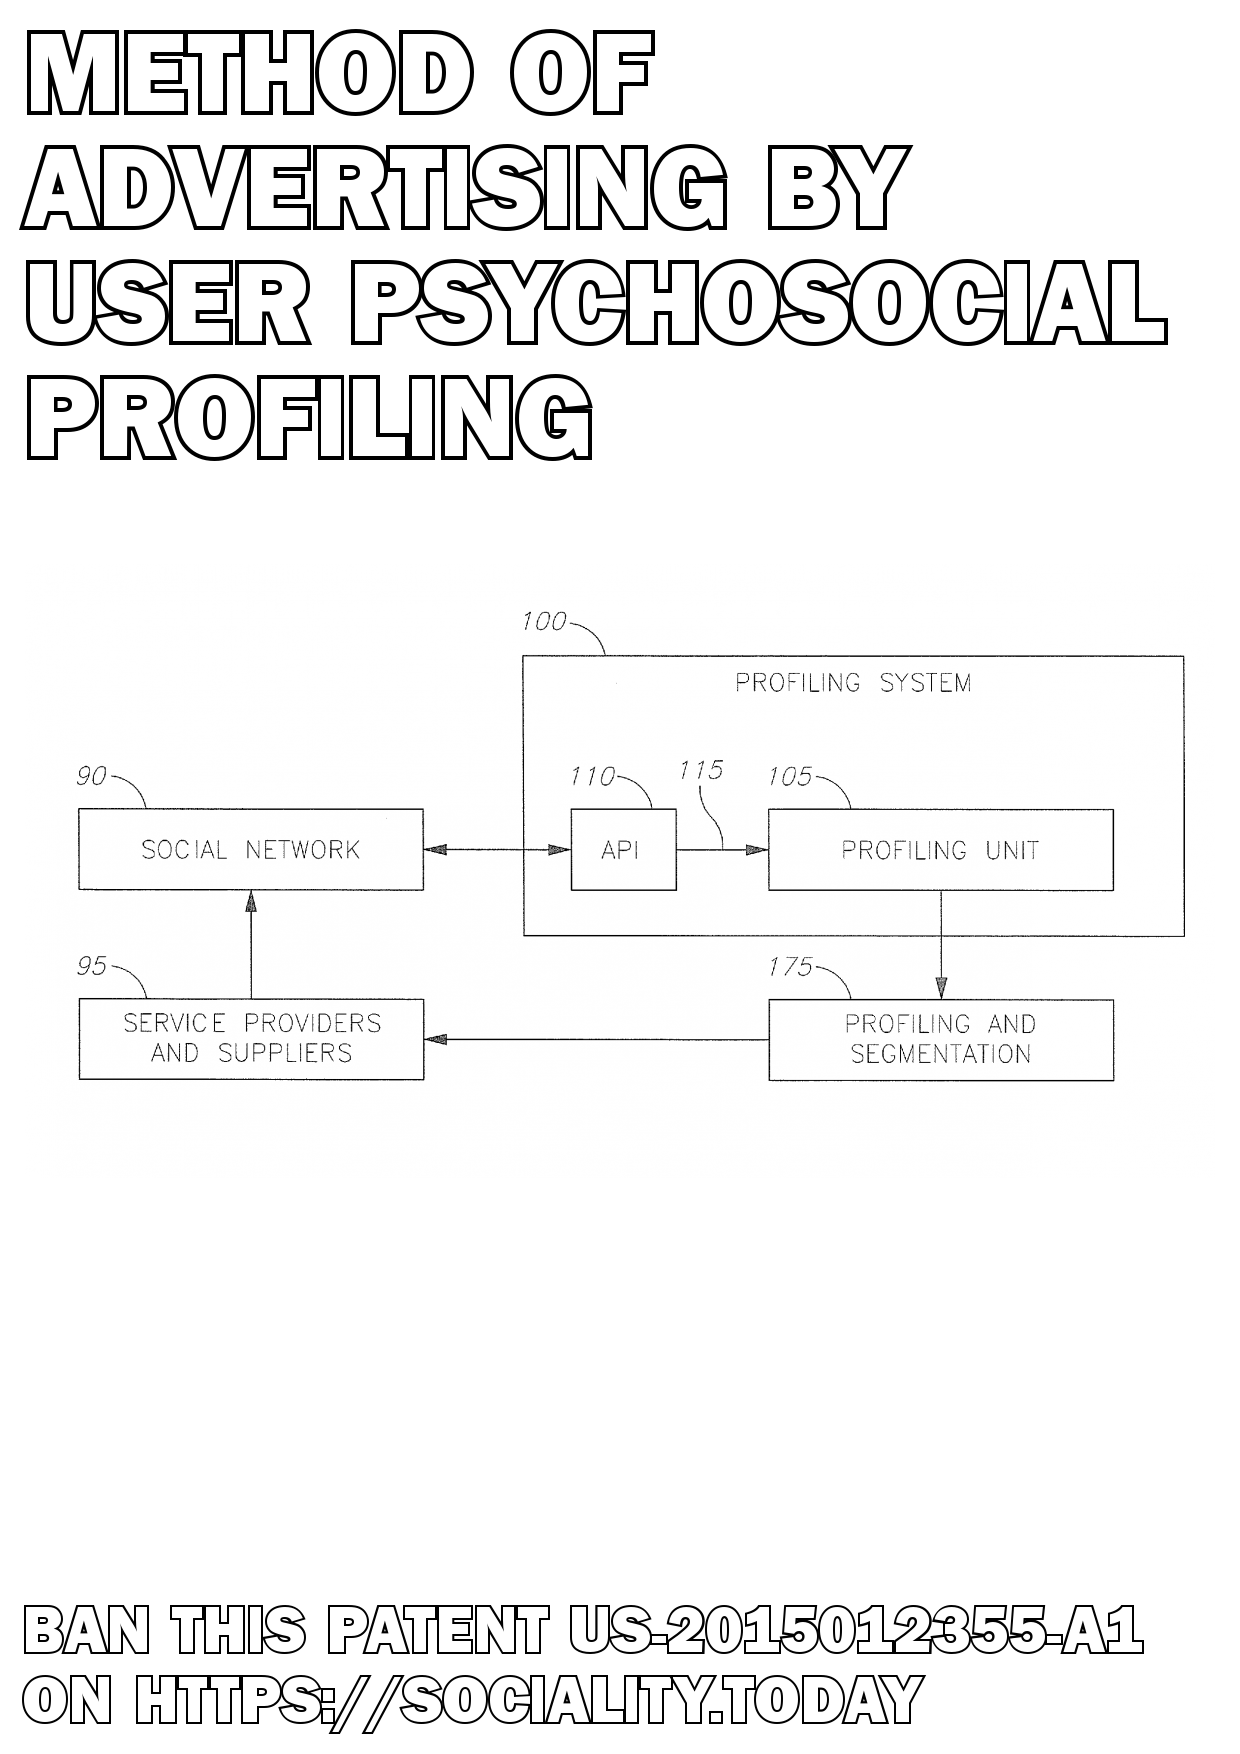 Method of advertising by user psychosocial profiling  - US-2015012355-A1